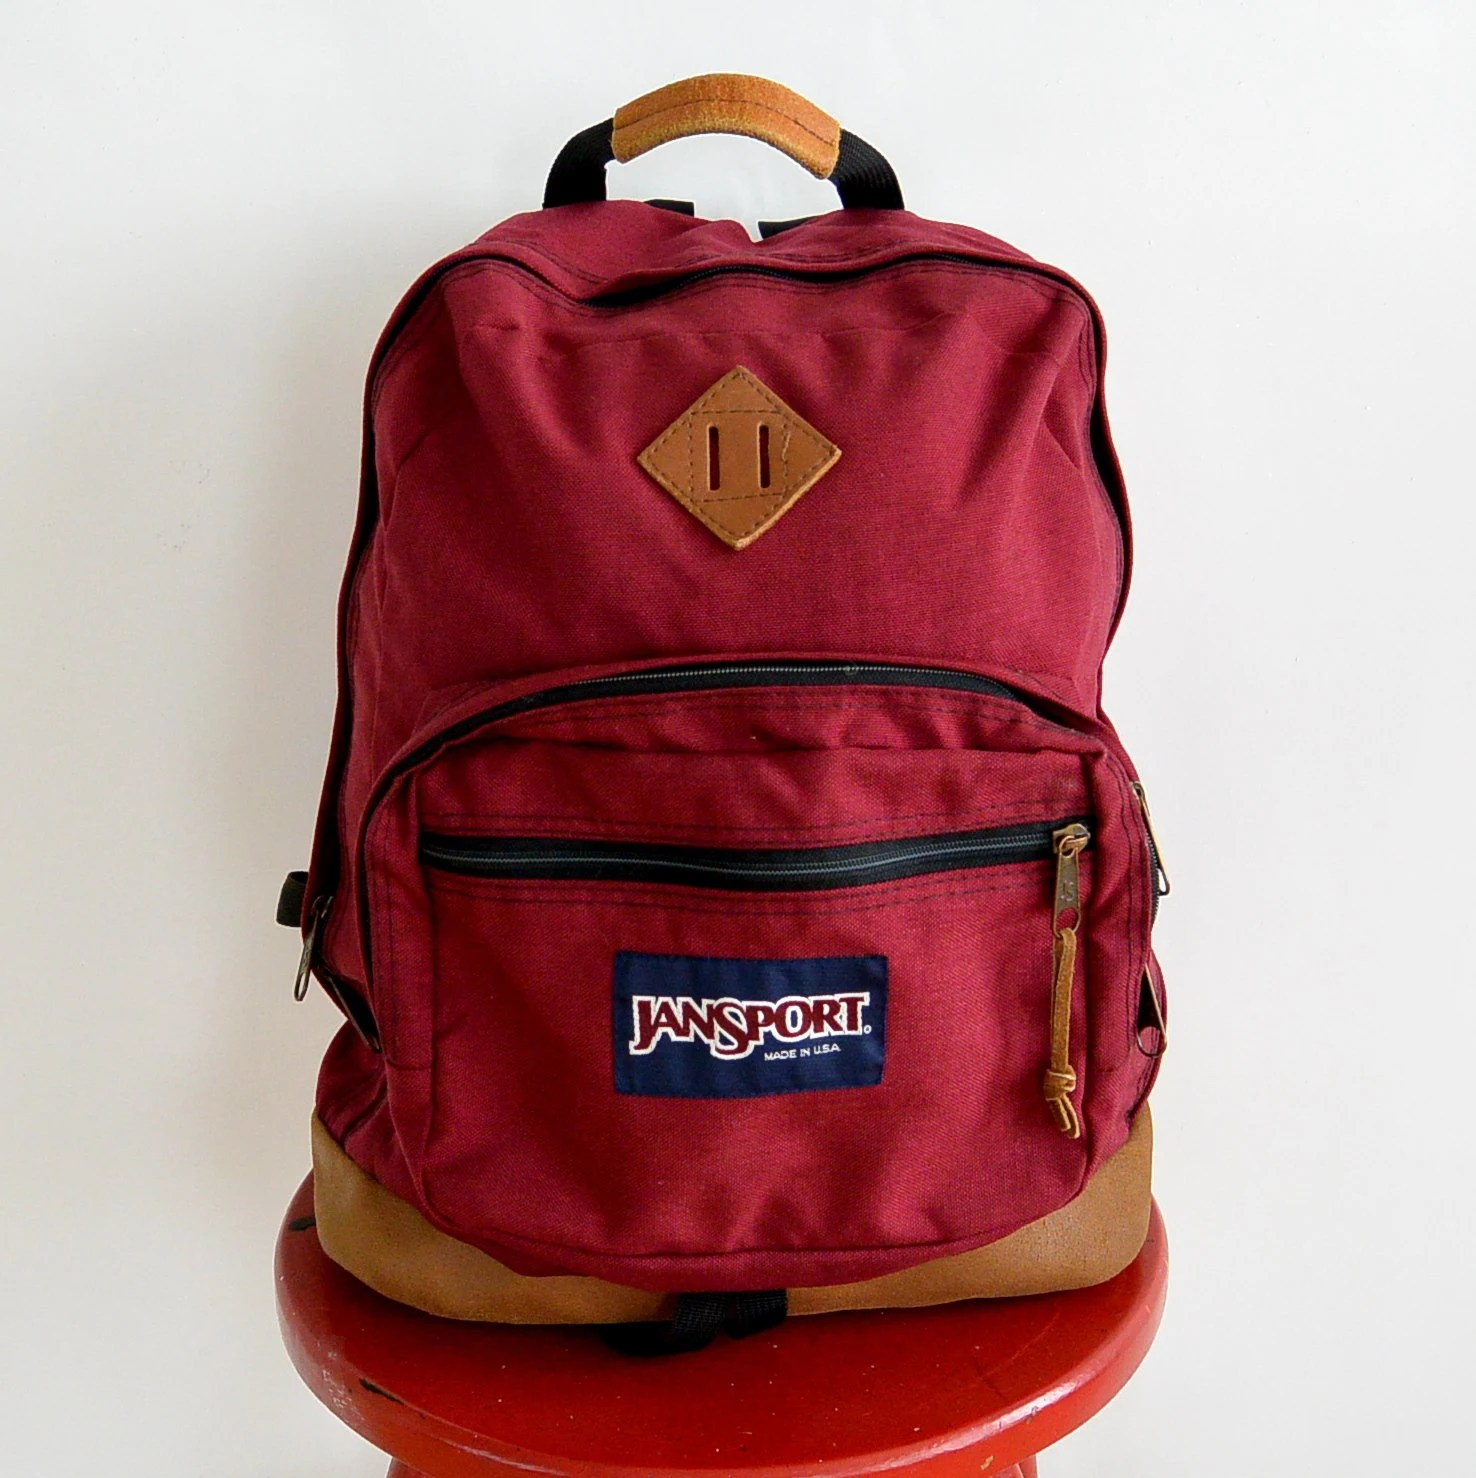 And Bottom Leather Bottom Black Backpack Jansort Maroon Suede